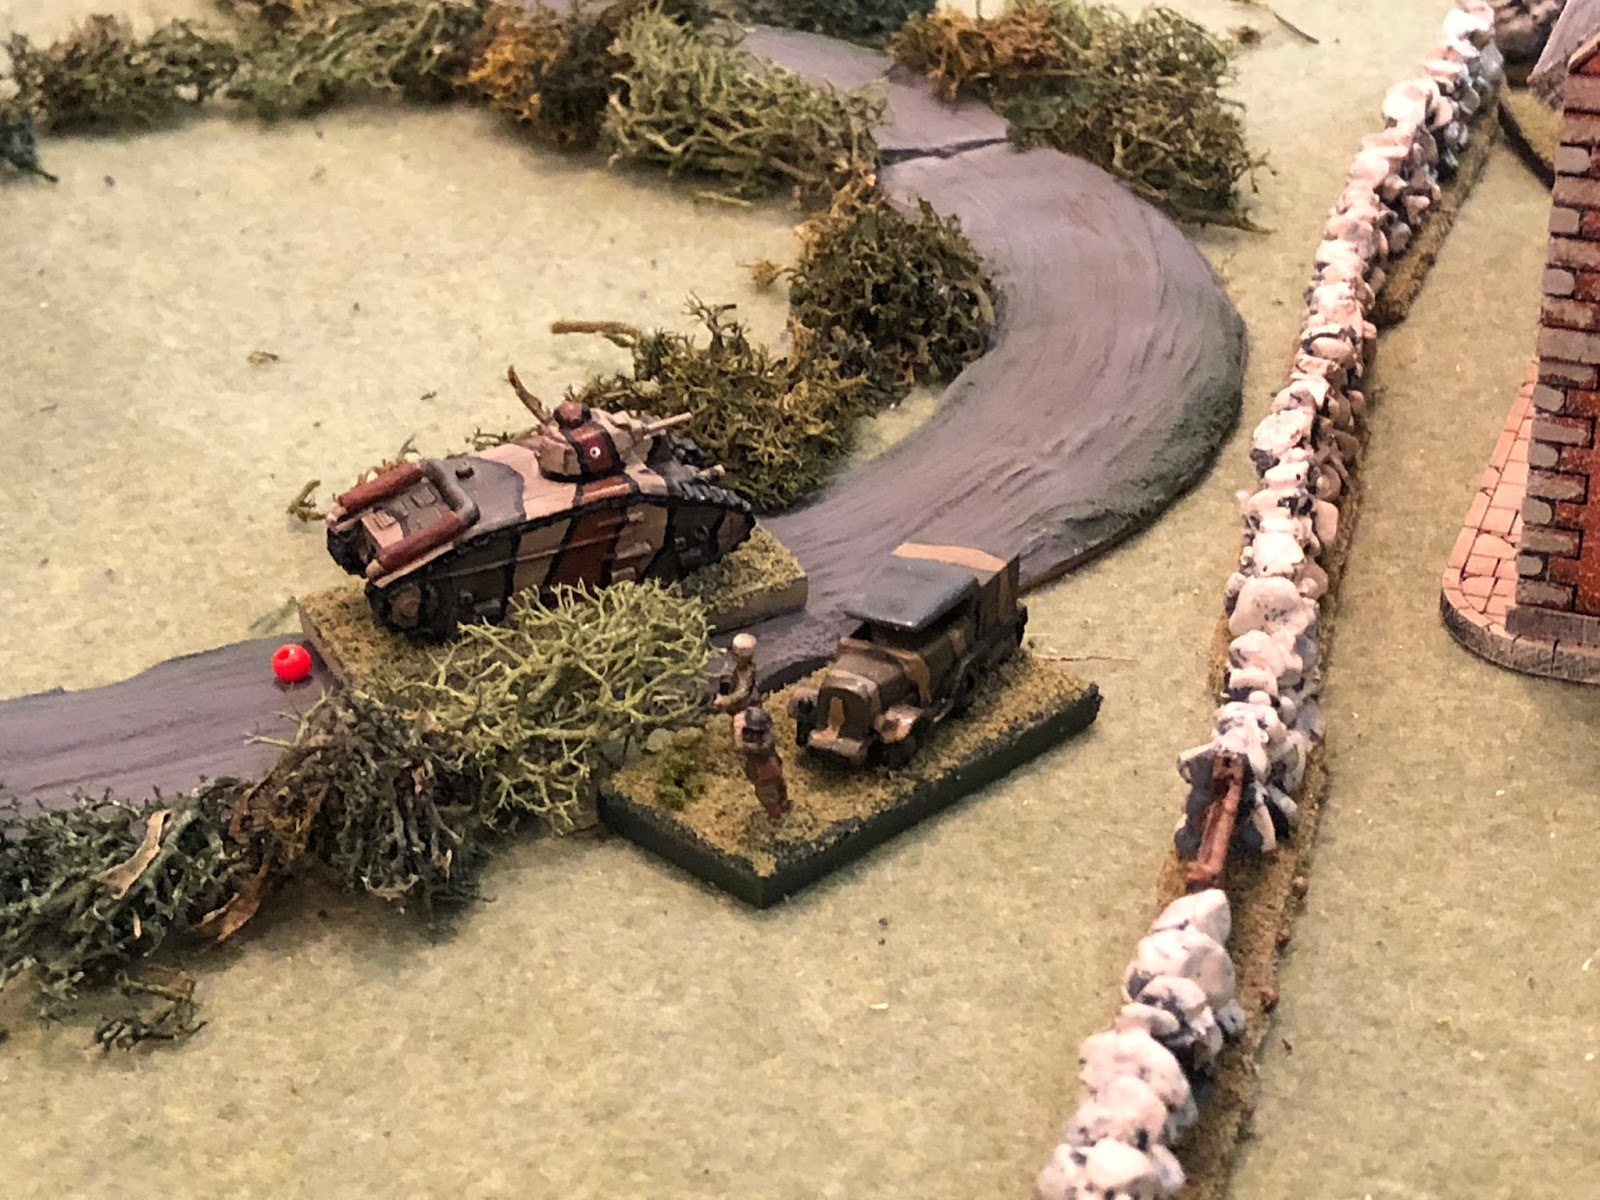 Back in the west, Major Renaut moves over and rallies Sgt Guillaume's crew back into the fight...